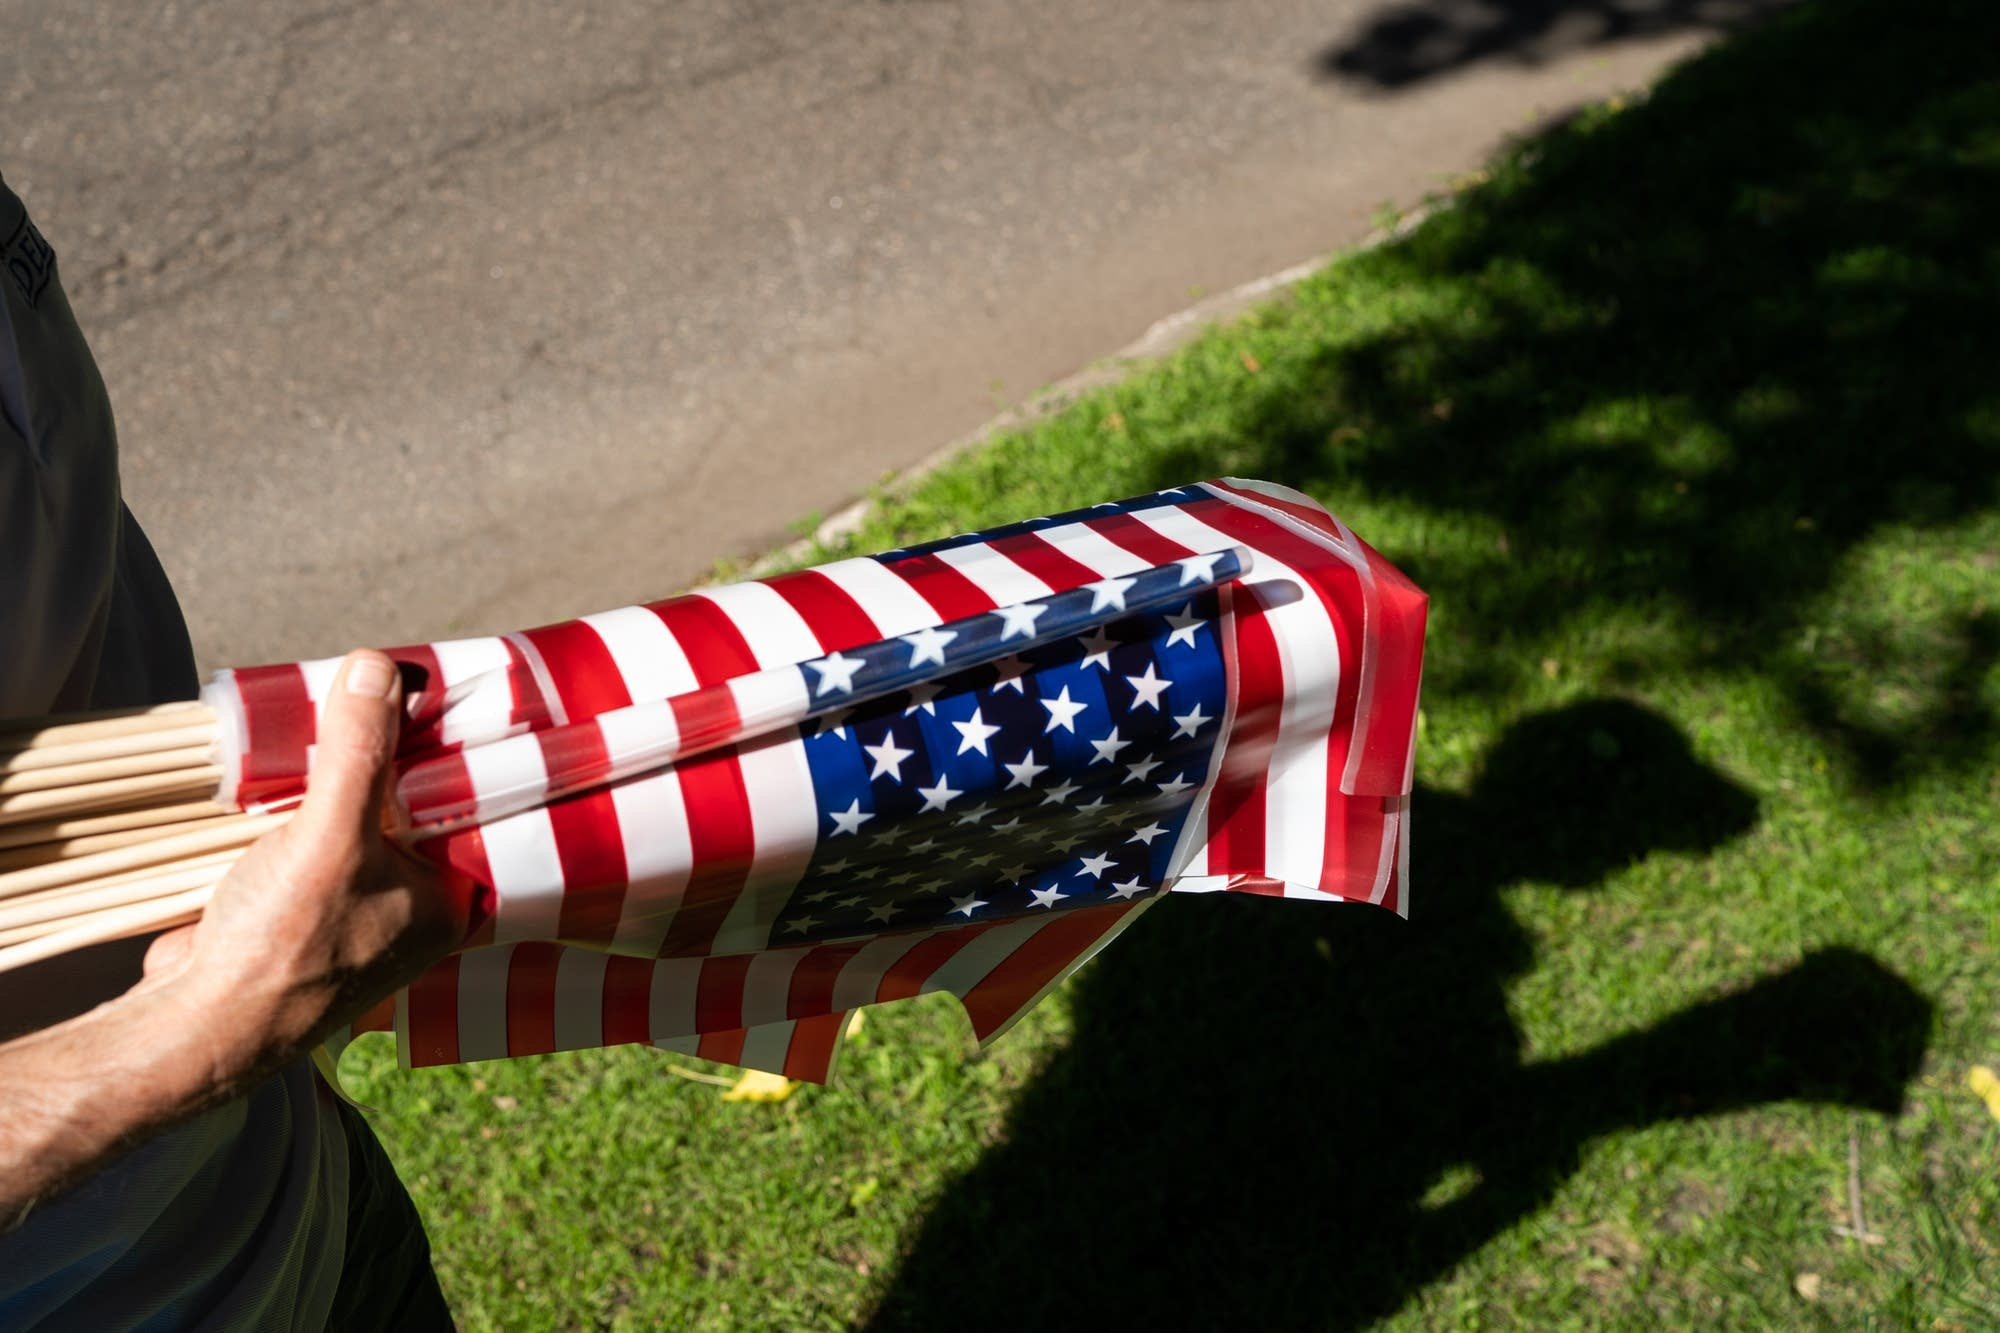 Tom Edelstein holds a bundle of American Flags.